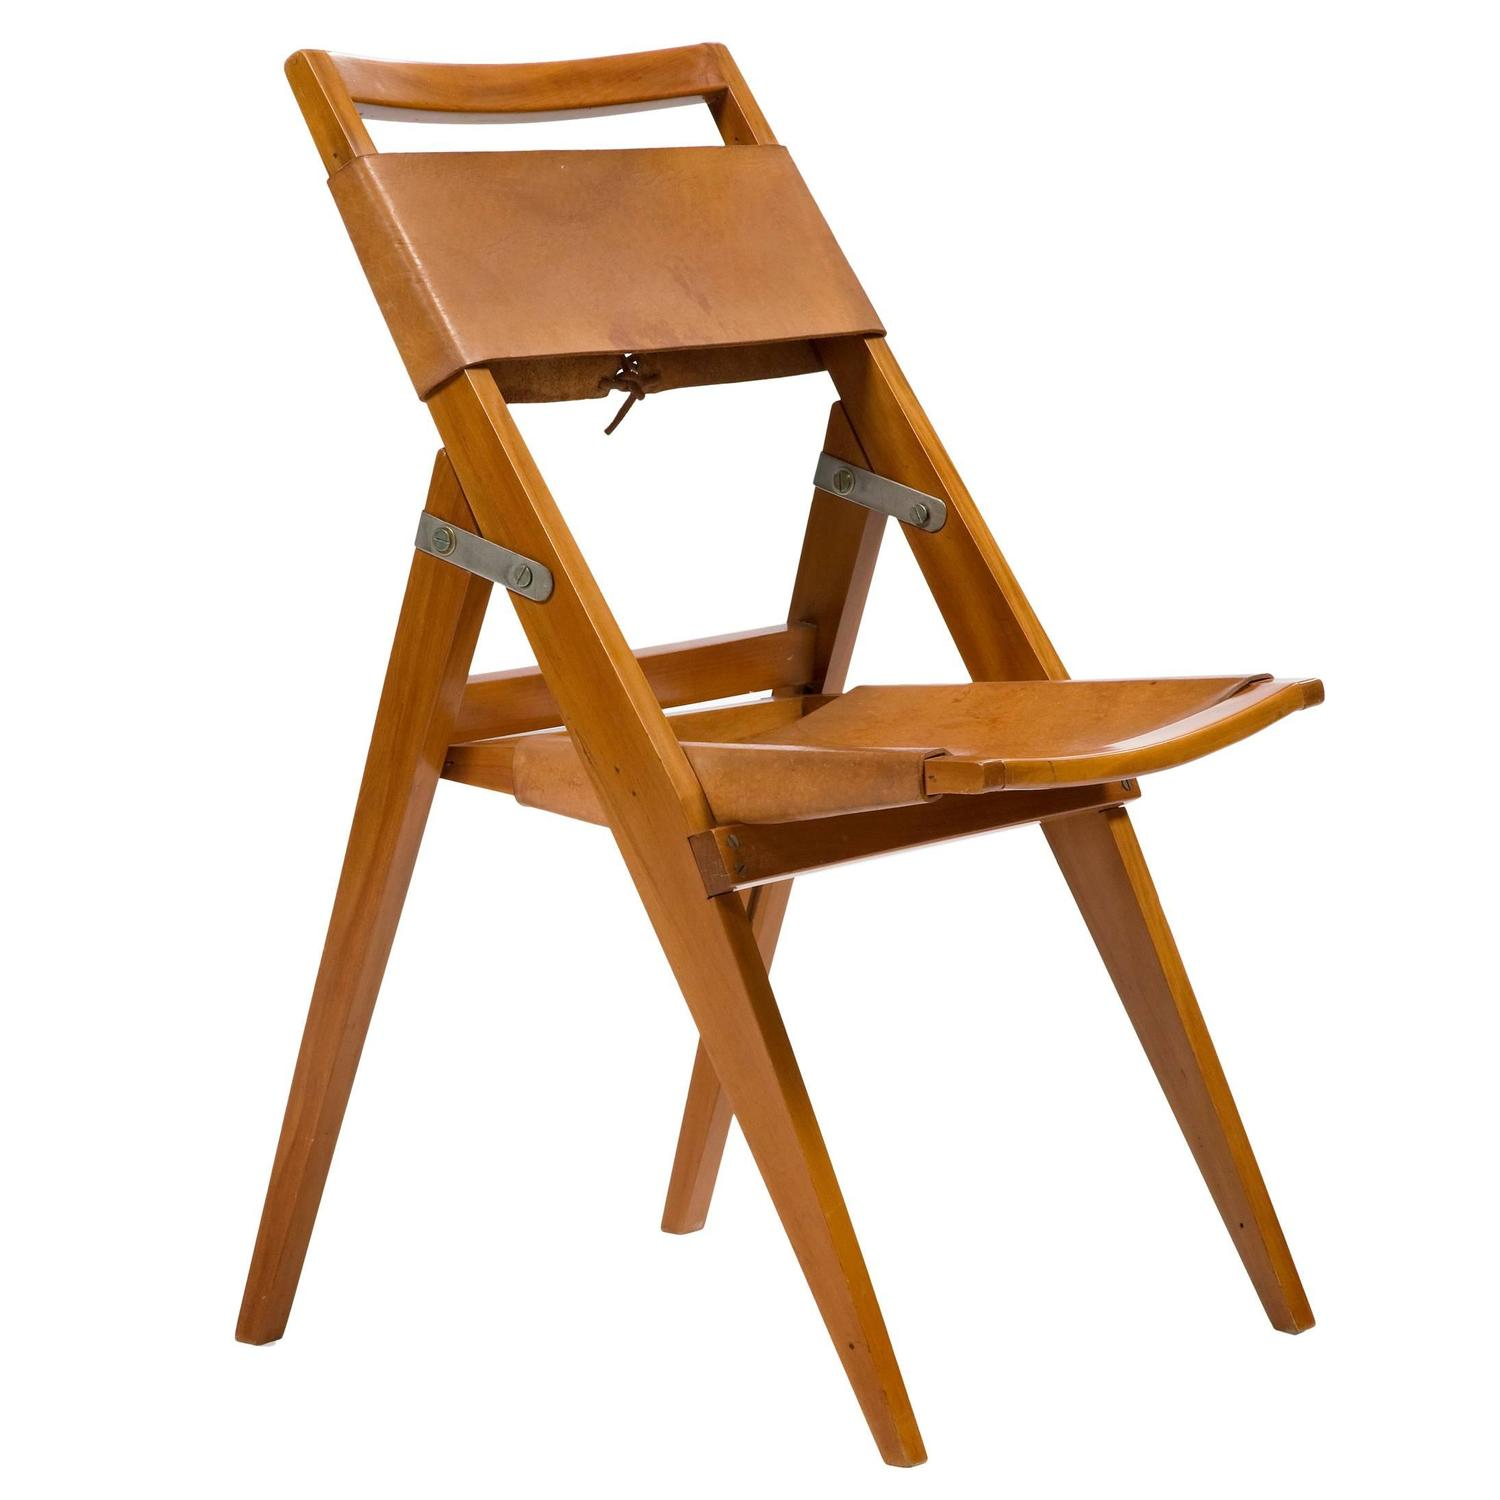 Folding Chairs 273 For Sale on 1stdibs